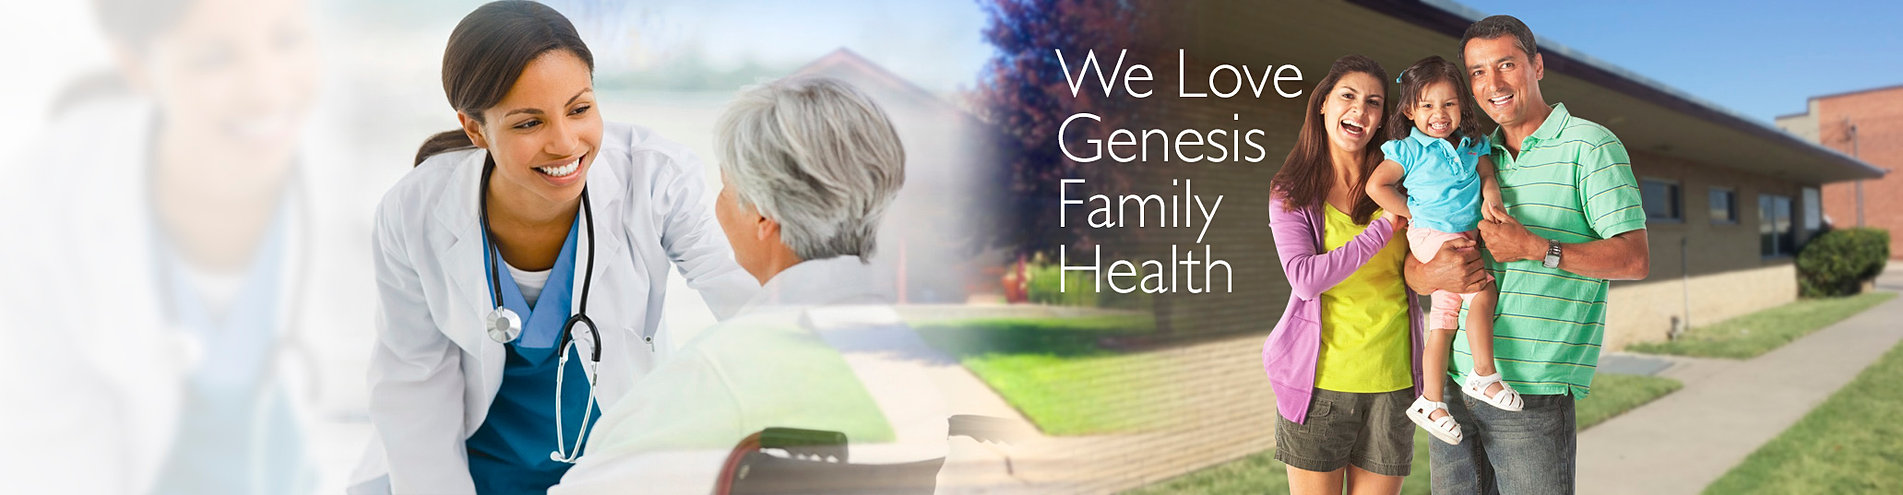 Genesis Family Health UMMAM Garden City Kansas Contact